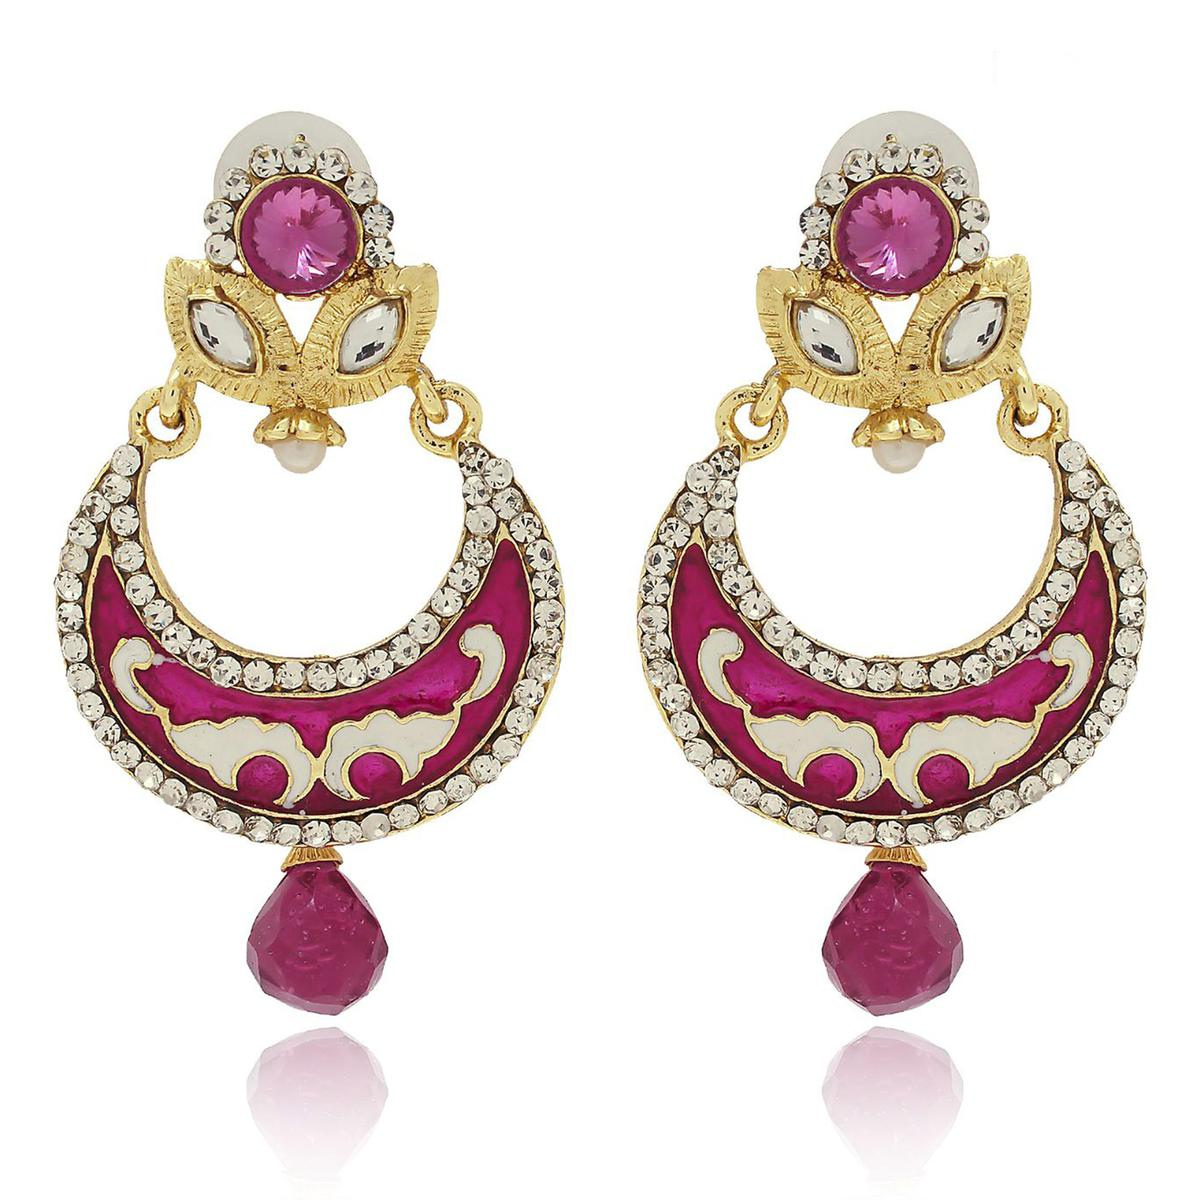 Arresting Pink Colored Mix Metal Stone Work Earrings